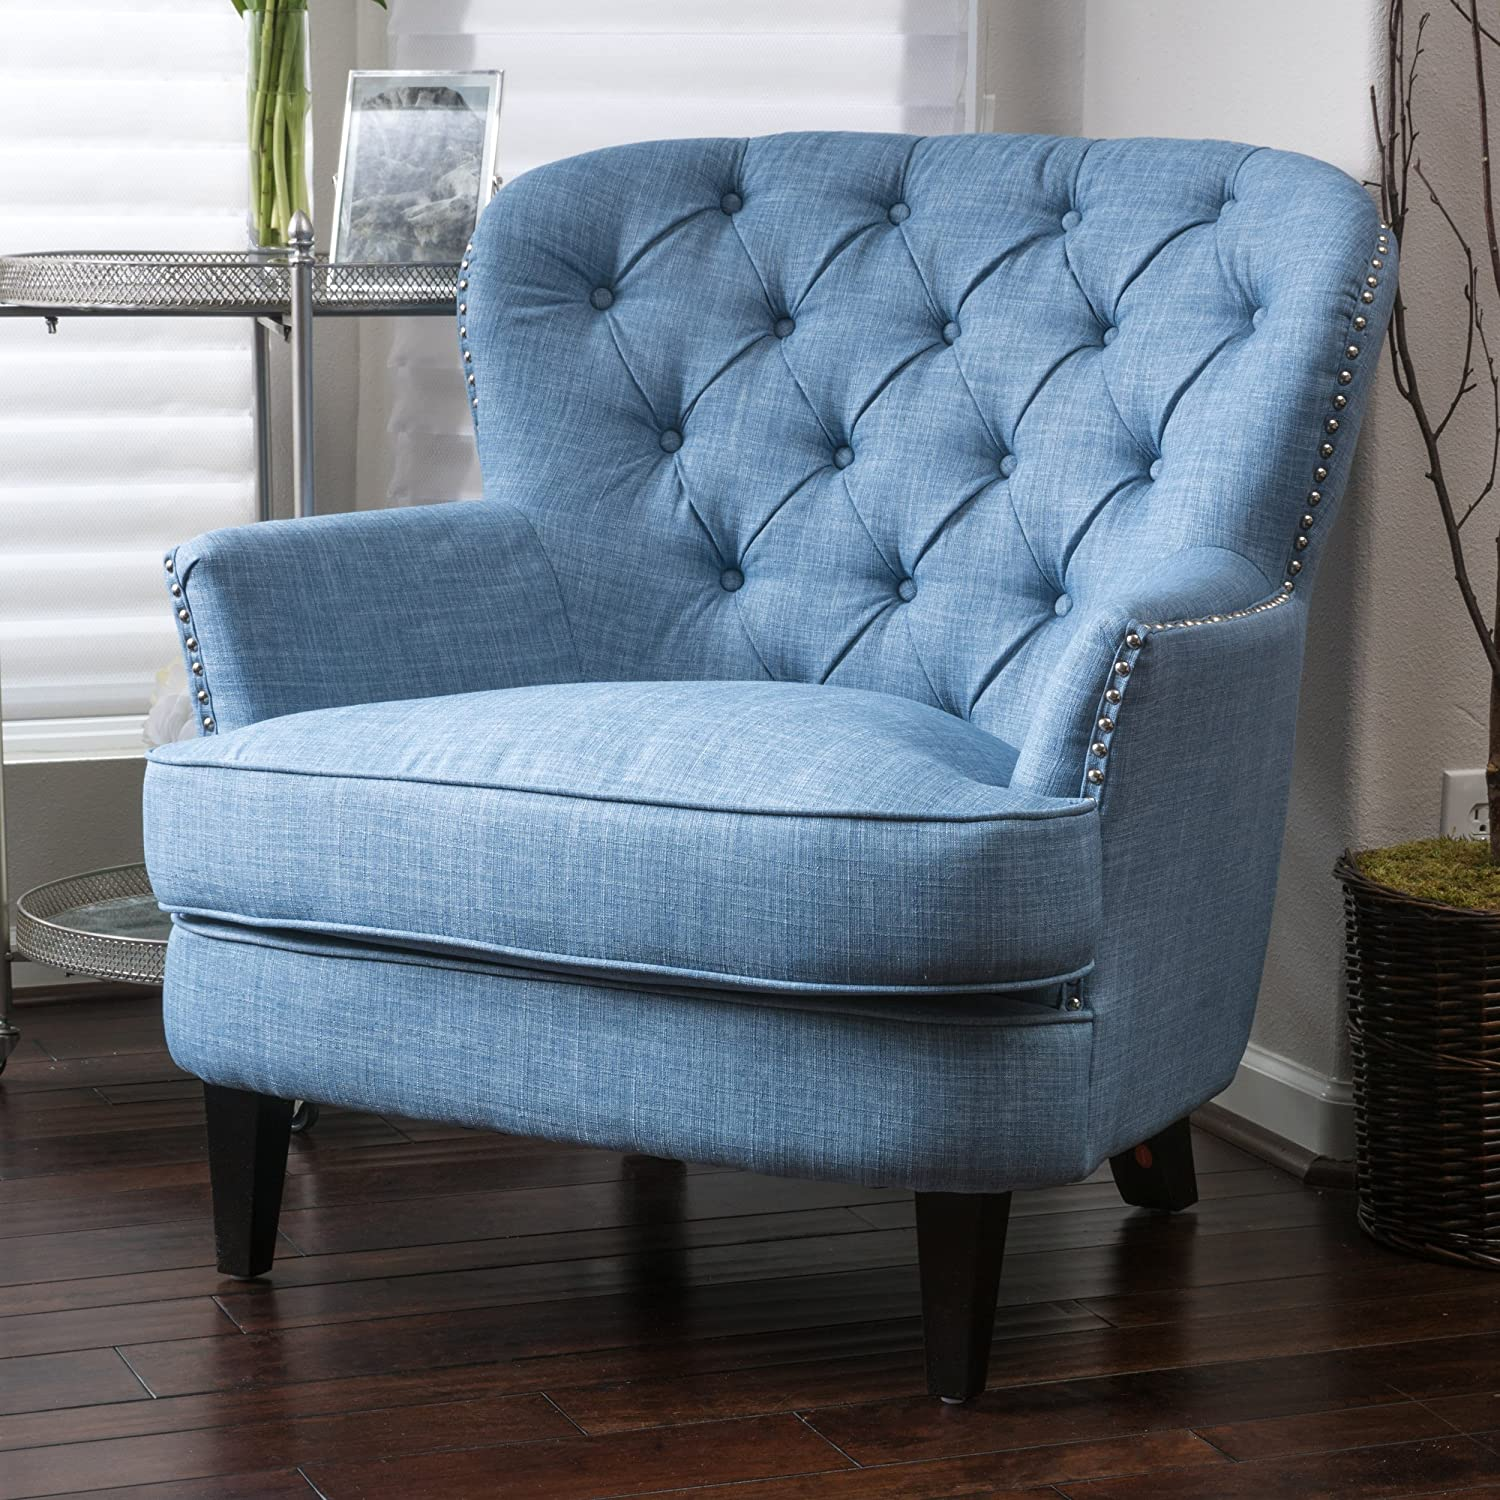 Amazon com great deal furniture alfred tufted fabric club chair contemporary lounge accent chair light blue kitchen dining